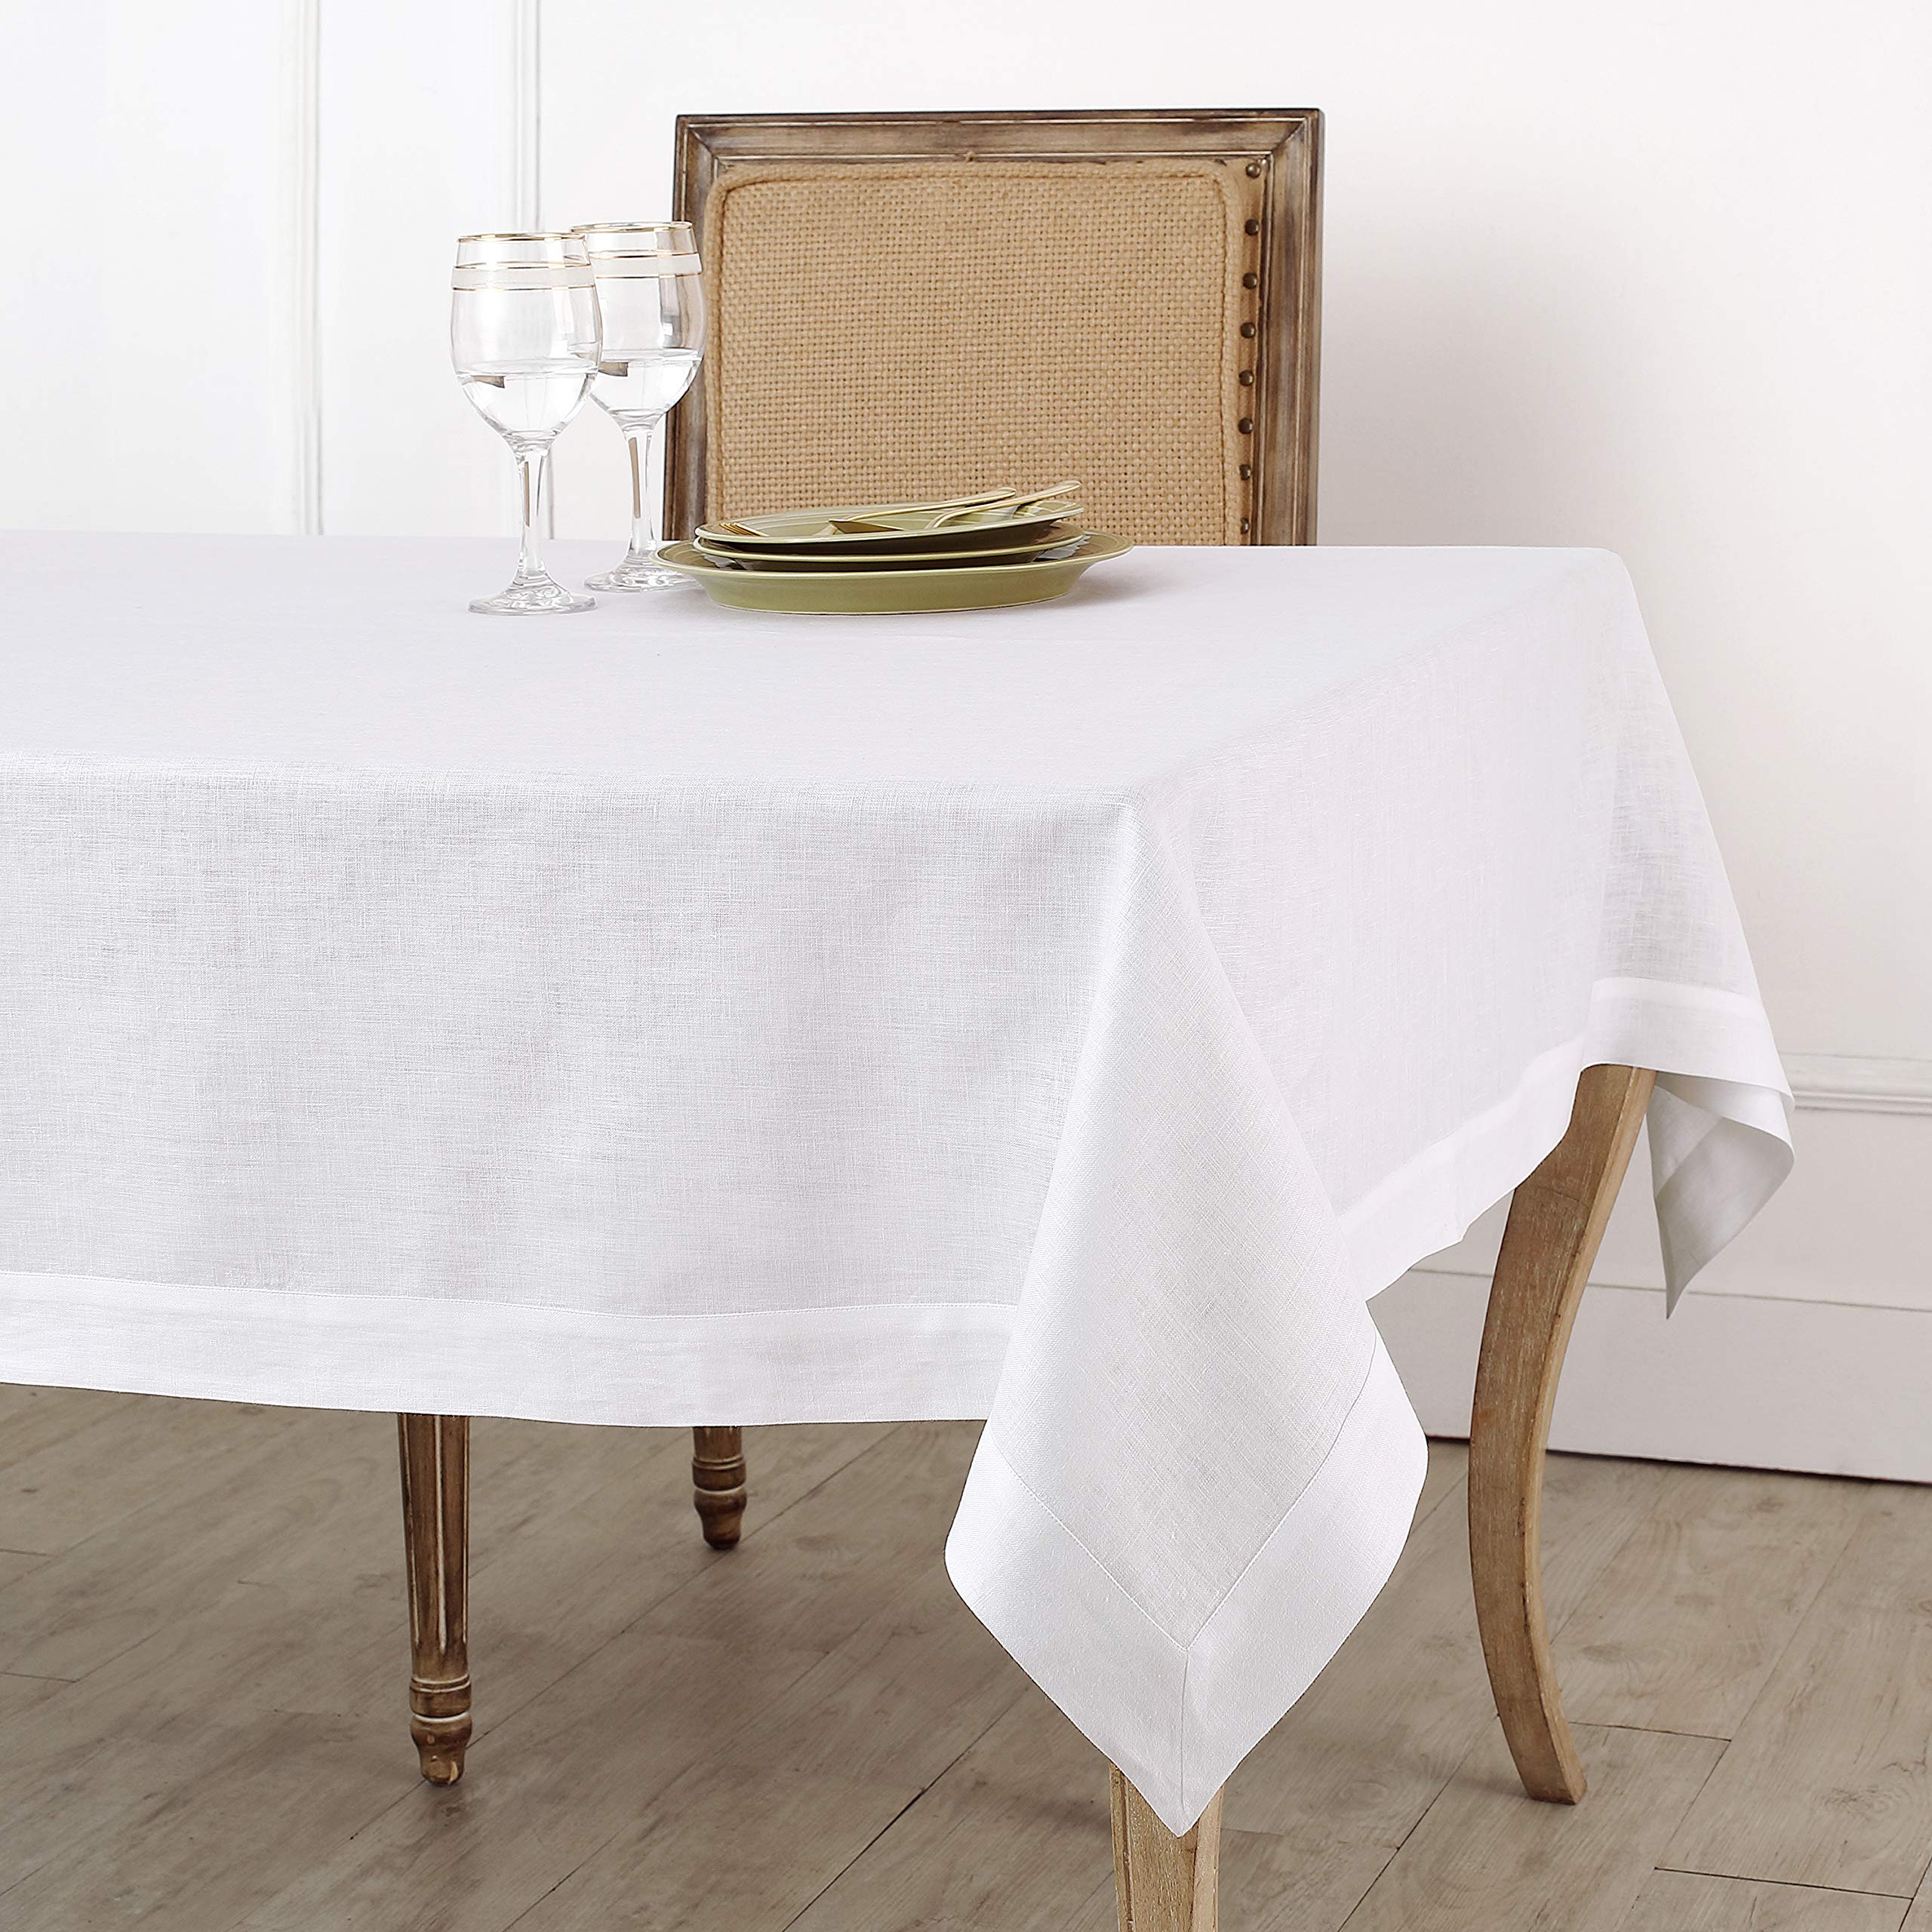 Solino Home 100% Linen Tablecloth - 60 x 120 Inch White, Natural Fabric, European Flax - Athena Rectangular Tablecloth for Indoor and Outdoor use